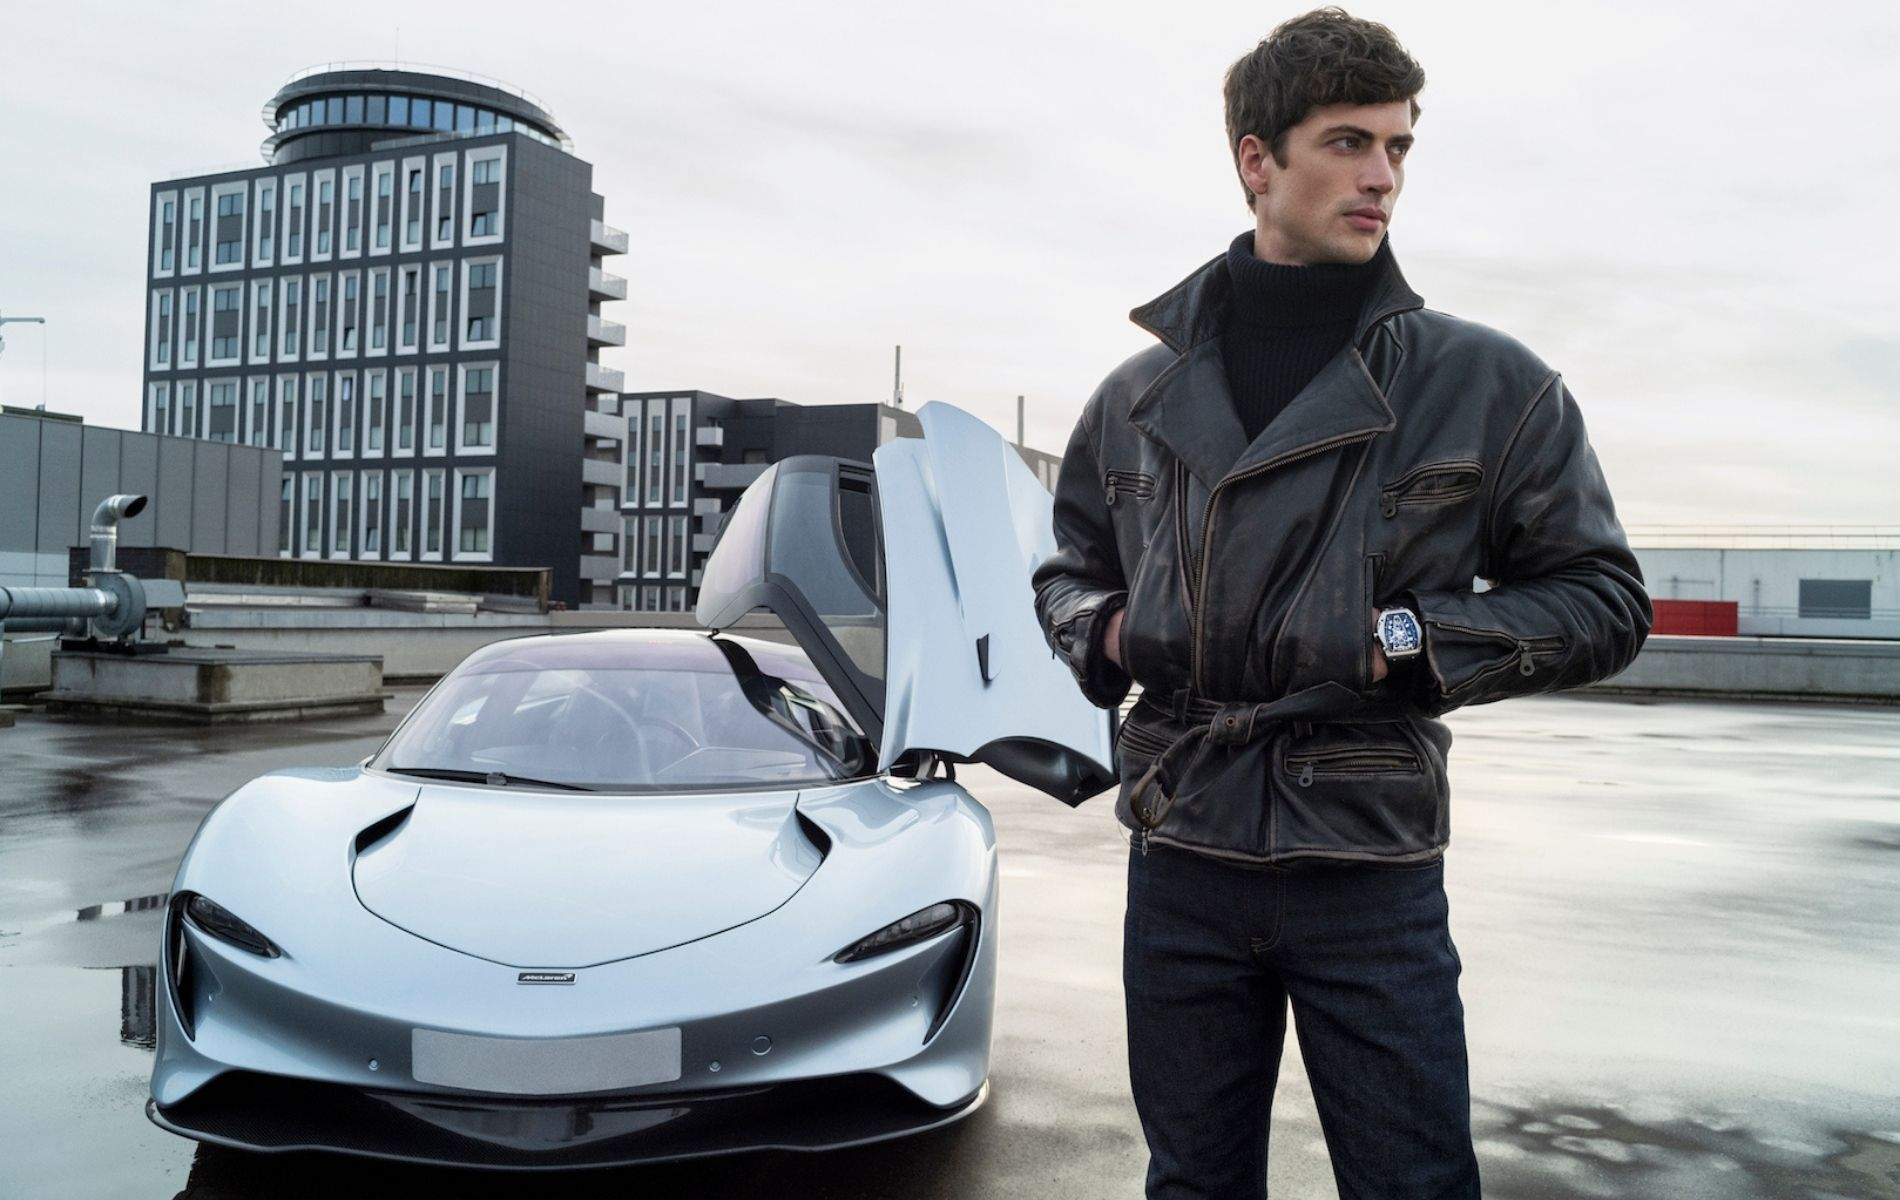 A model wearing the Richard Mille watch posing against the McLaren Speedtail supercar